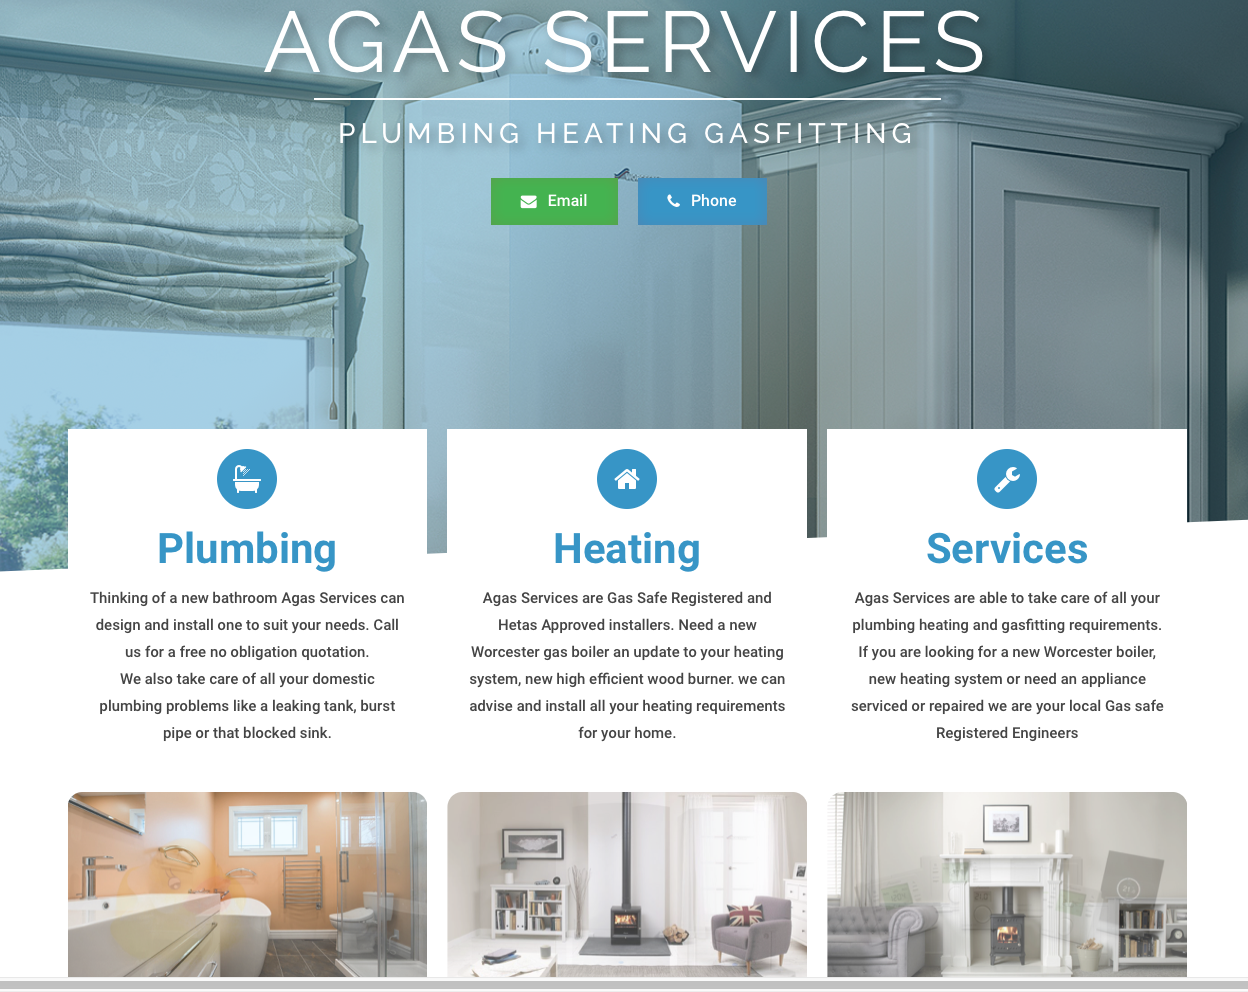 Central Heating Installation, Service and Repair - Agas Services